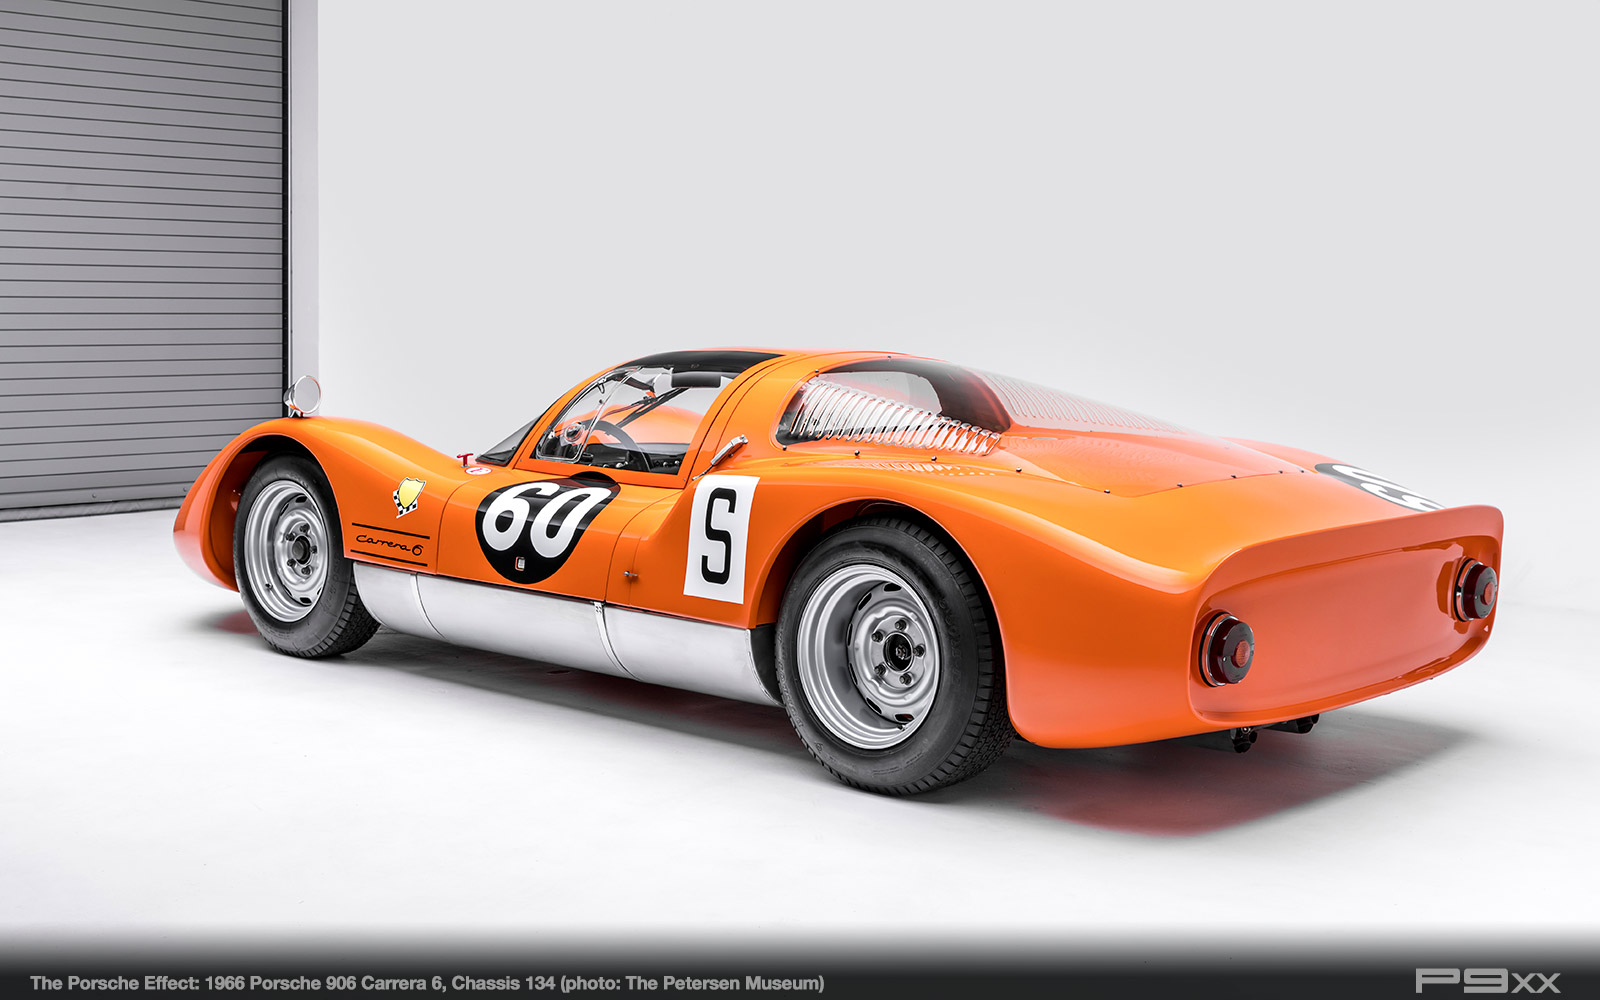 1964-906-Carrera-6-Chassis-134-Petersen-Automotive-Museum-The-Porsche-Effect-363